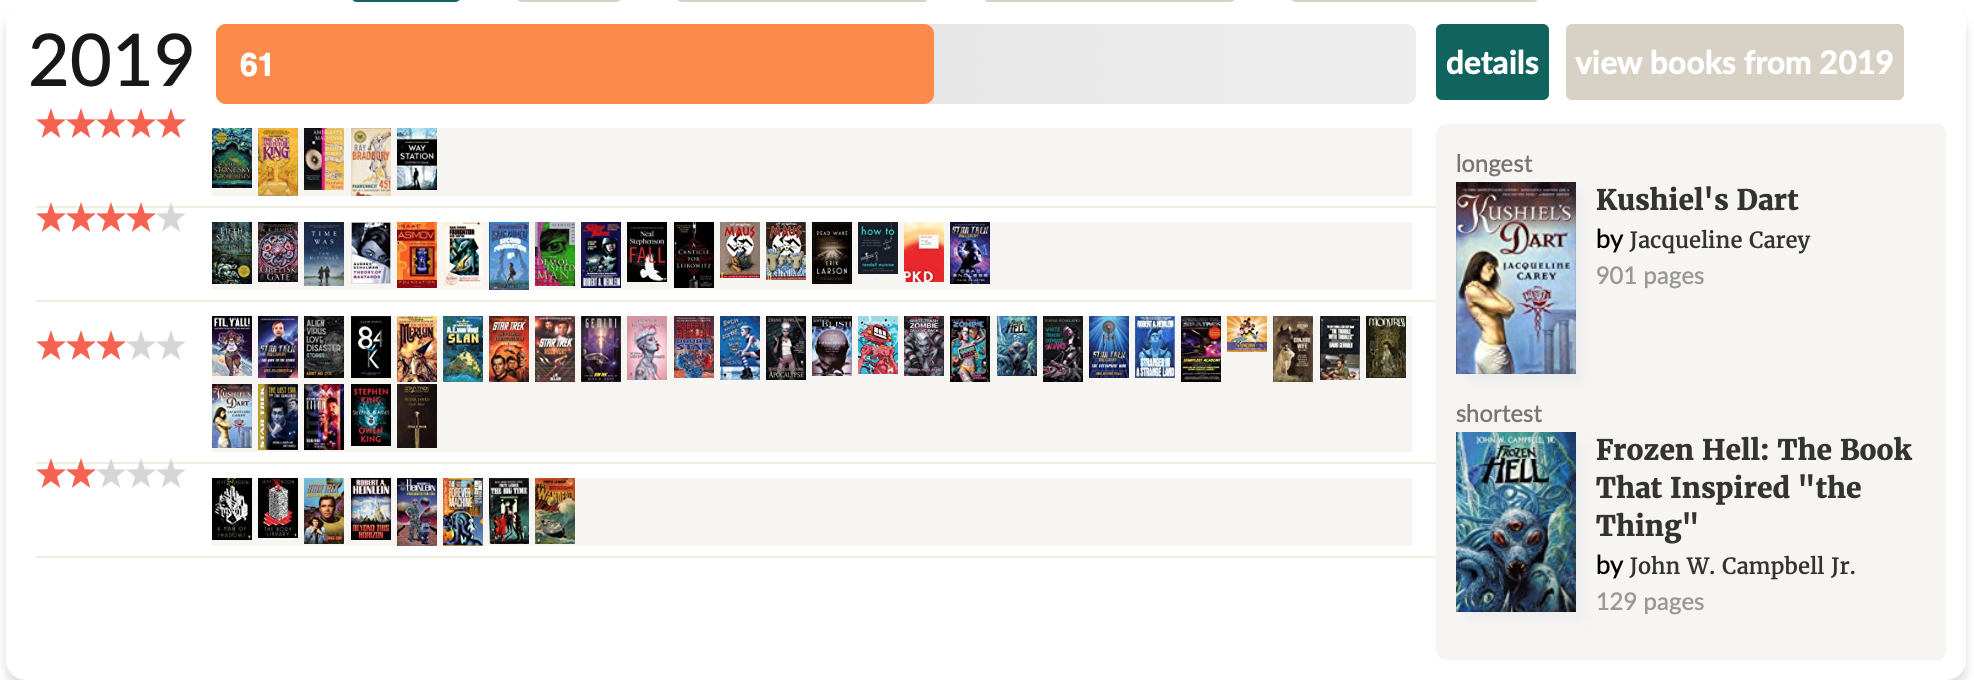 My 2019 reading stats from Goodreads